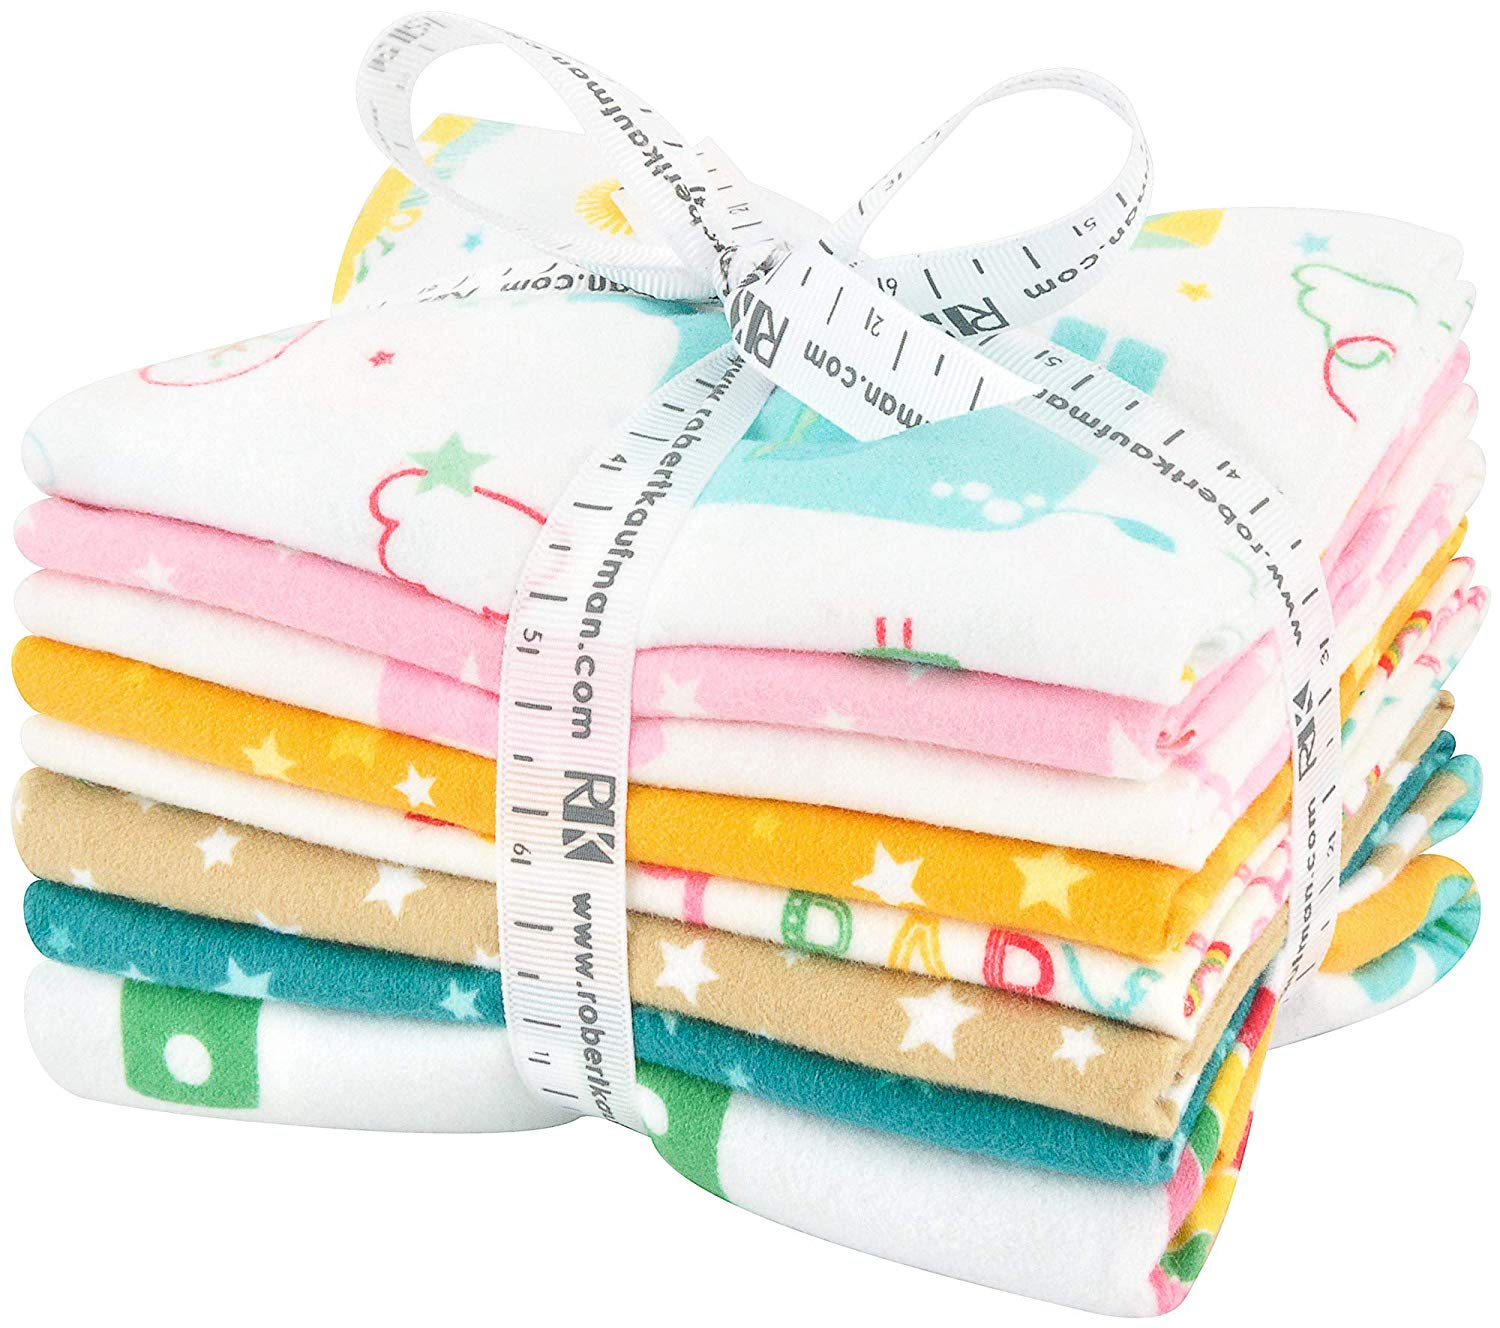 Welcome Baby Flannel -Lucy Belfield; 7 Fat Qtr w/ 1 Panel Robert Kaufman Fabrics